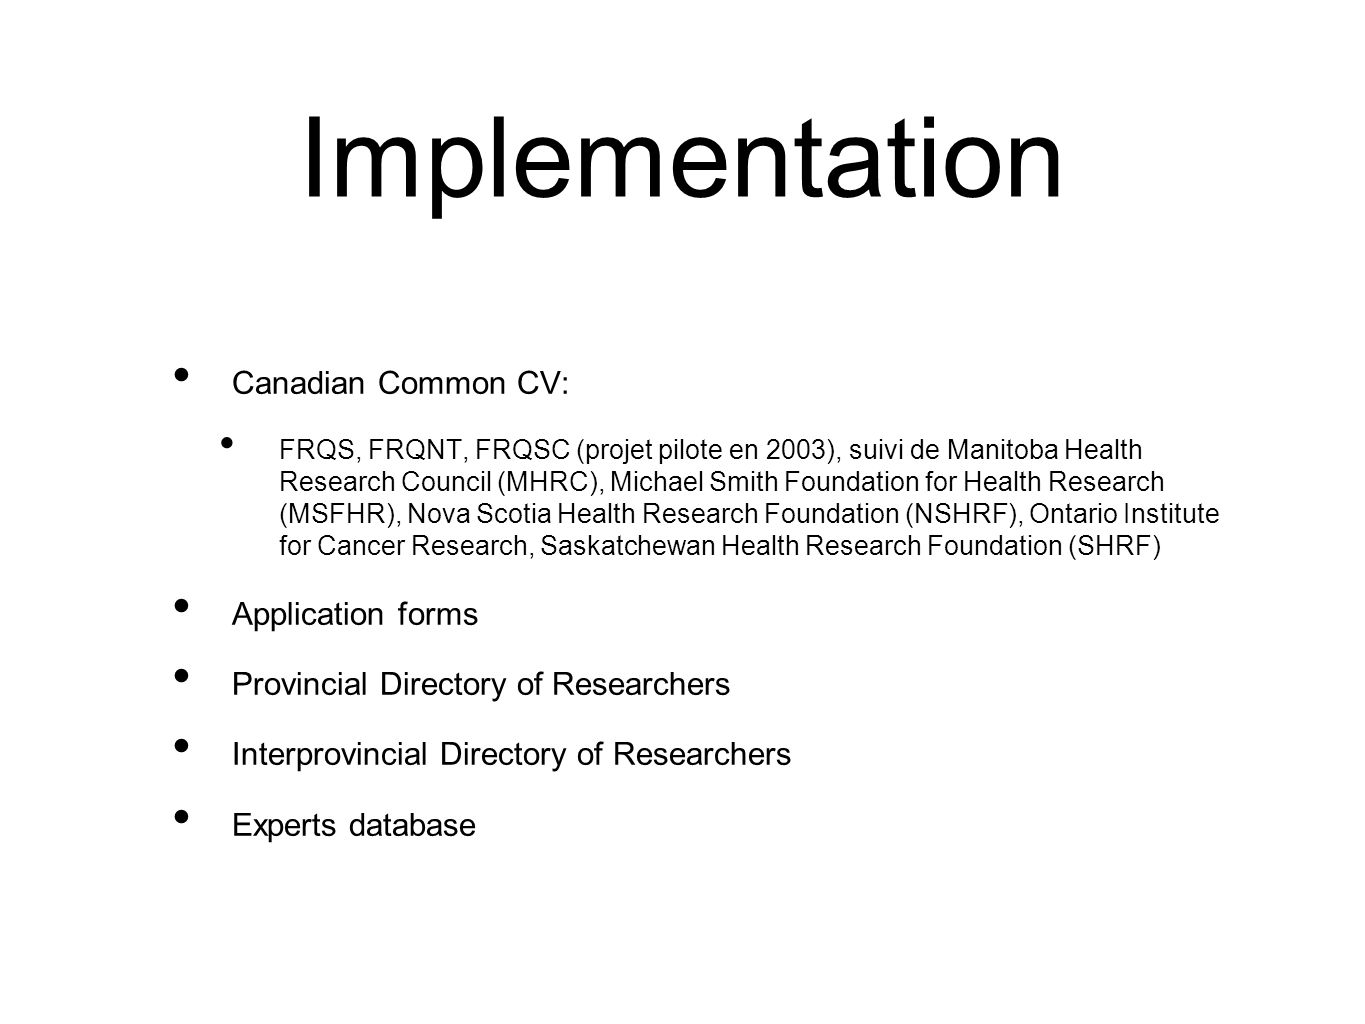 Implementation Canadian Common CV: FRQS, FRQNT, FRQSC (projet pilote en 2003), suivi de Manitoba Health Research Council (MHRC), Michael Smith Foundat